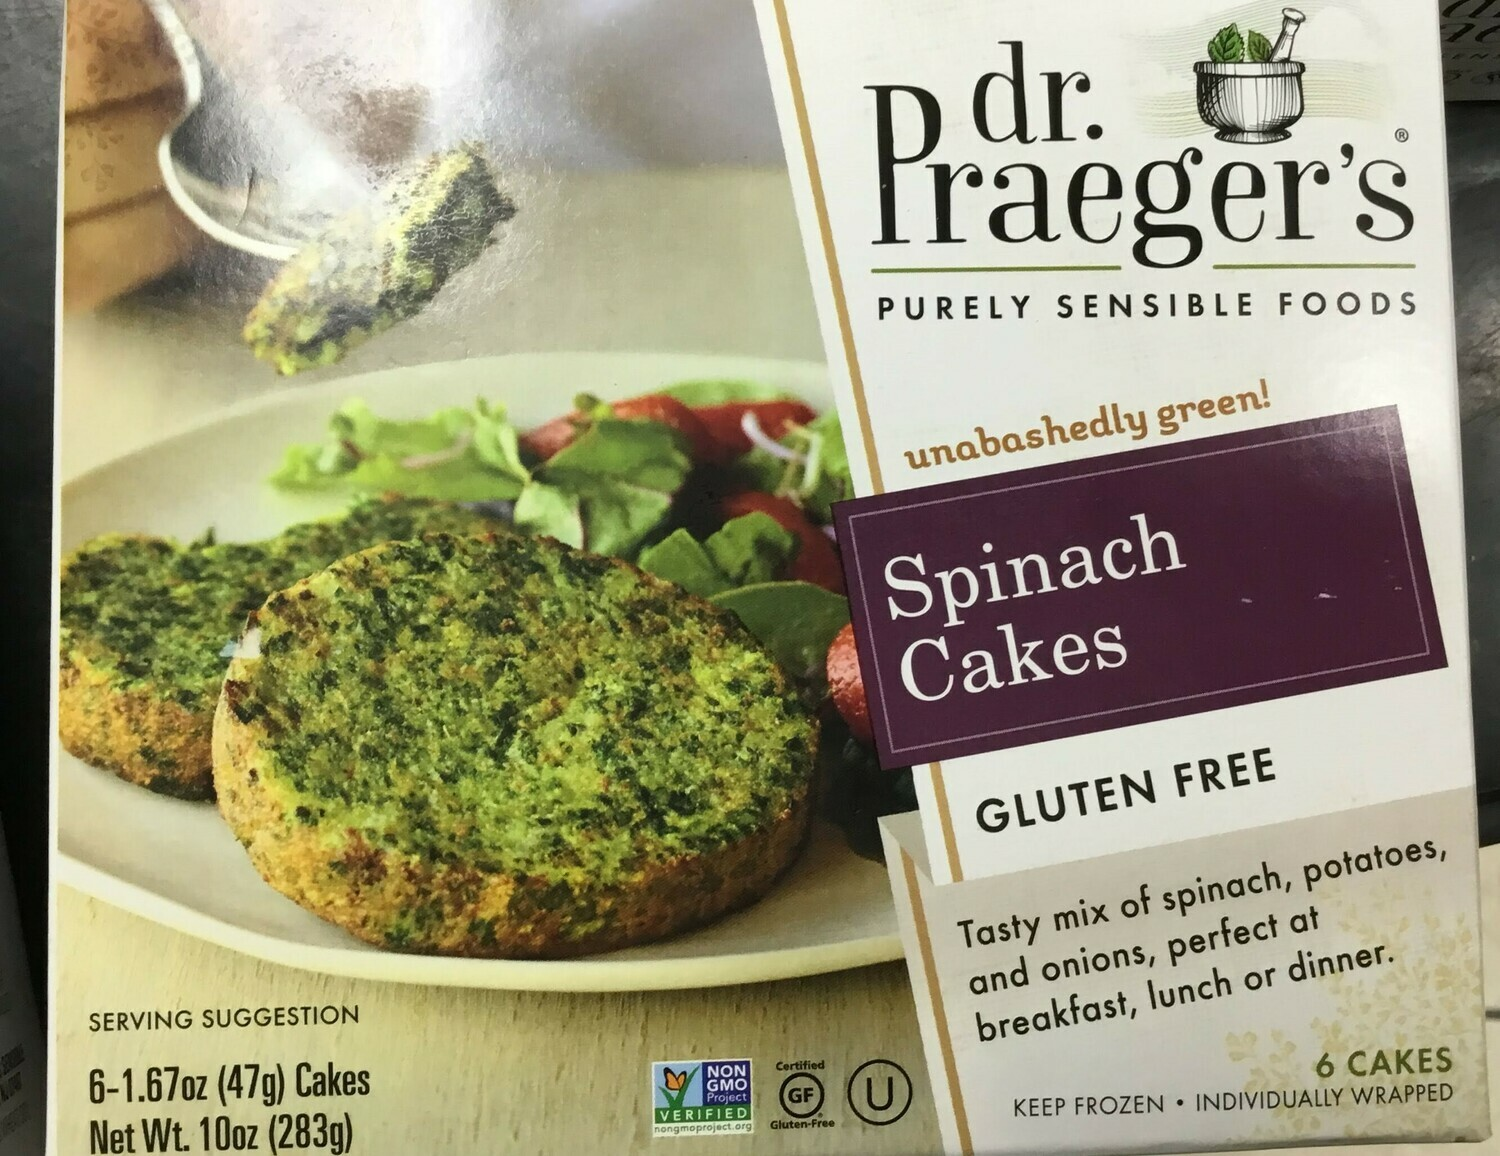 Dr. Praeger's Spinach Cakes